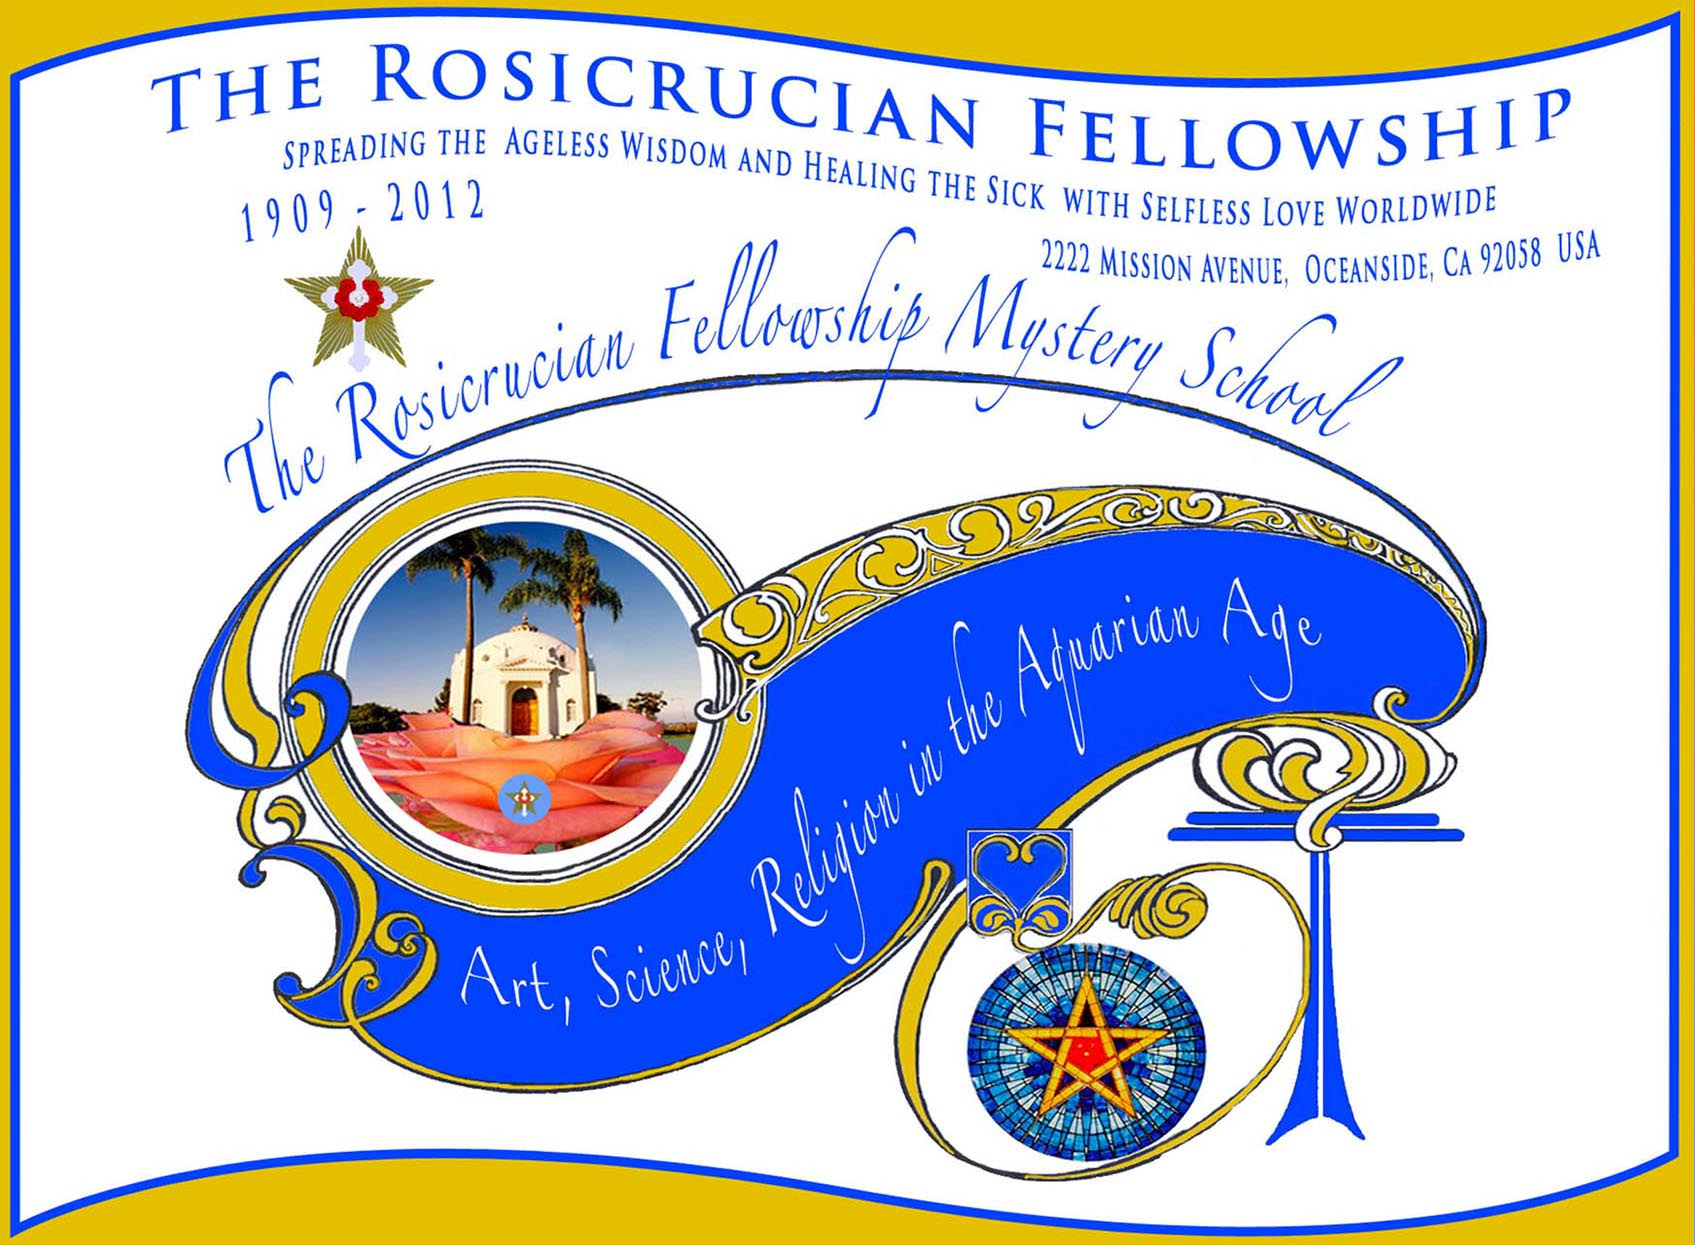 Rosicrucian Fellowship